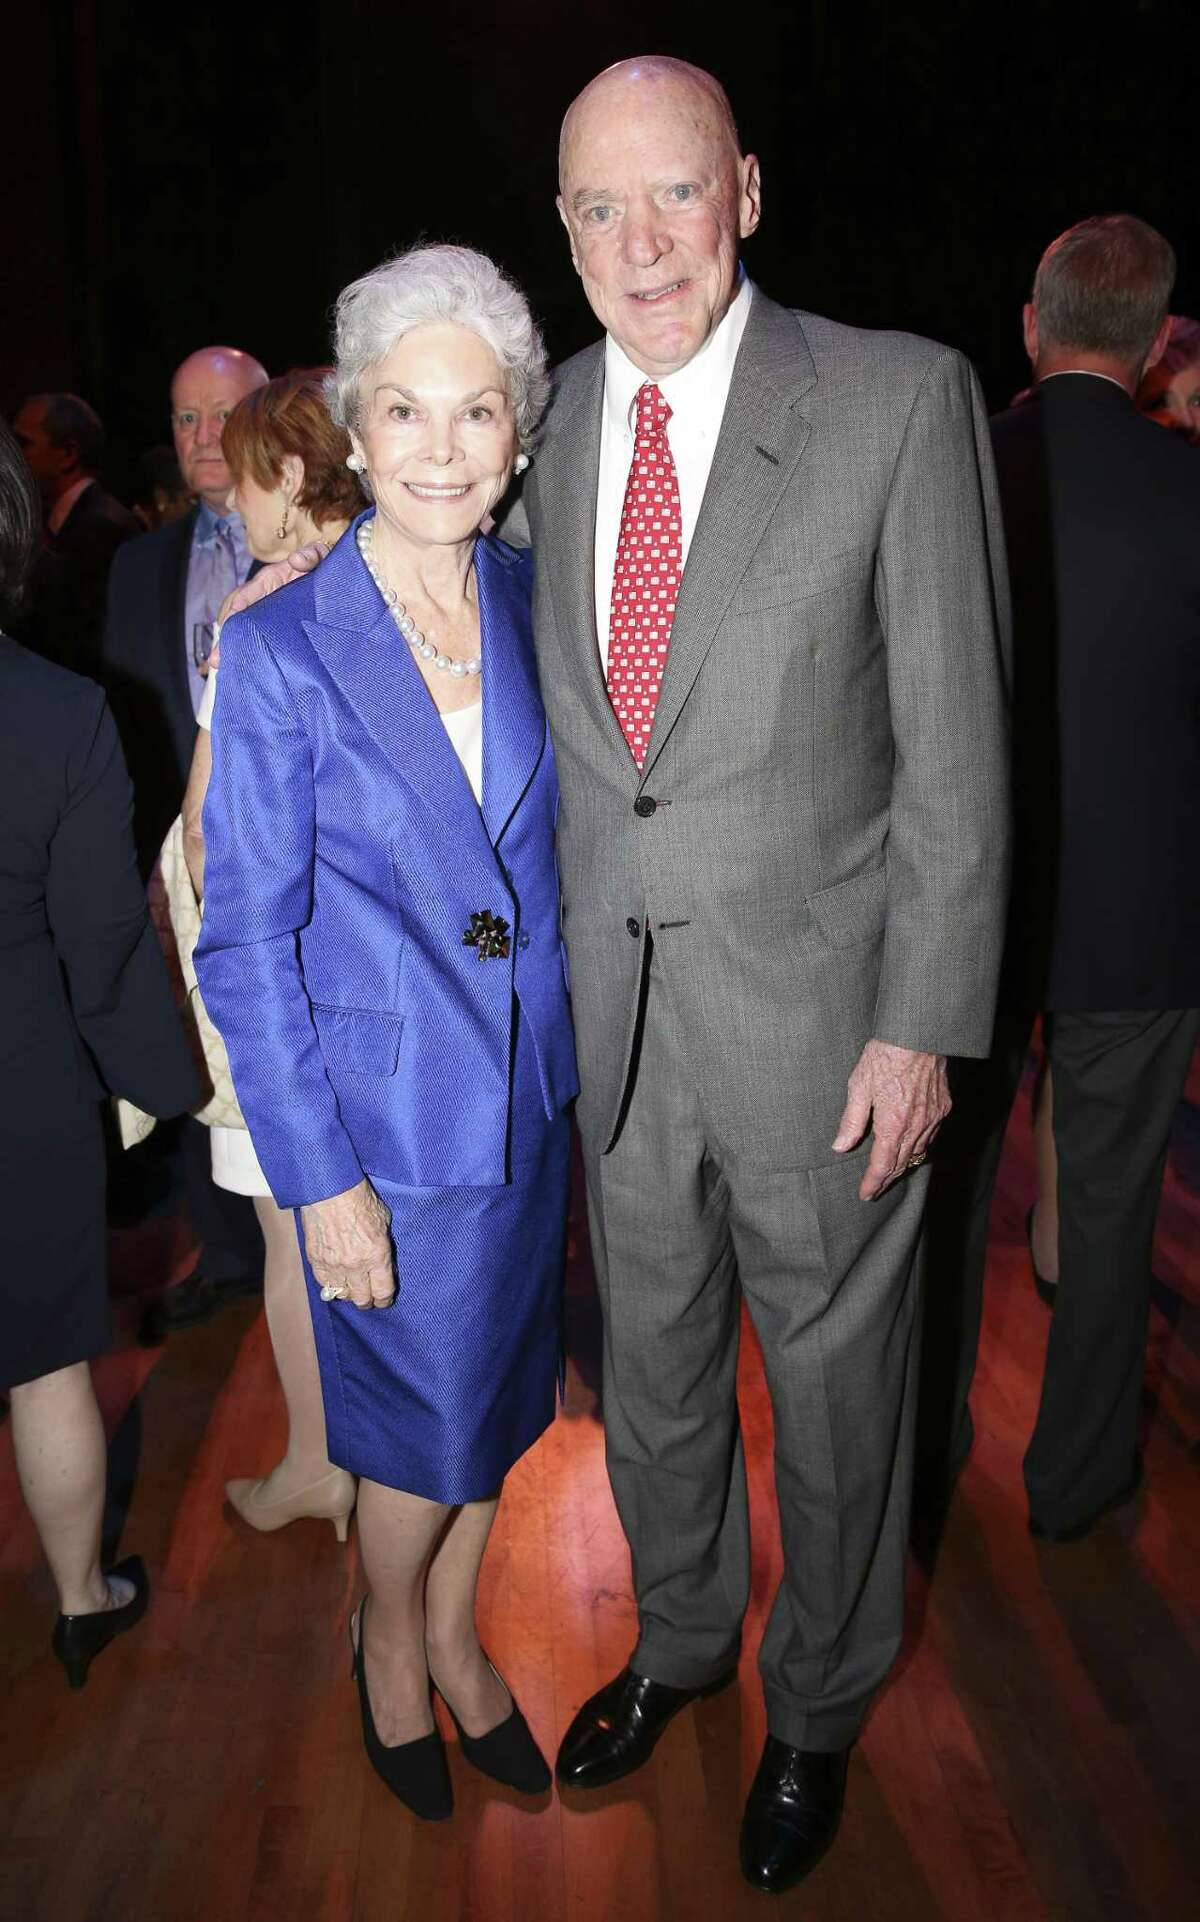 The McNair family:Most Houstonians know Robert and Janice McNair as Houston Texans' owners, though their diverse portfolio also includes Cogen Technologies, the McNair Group, Palmetto Partners, Ltd. and Cogene Biotech Ventures. The McNair Foundation has donated $100 million to Baylor College ofMedicine and $2.6 million toward various education-based financial aid initiatives in addition to support of the McNair Medical Institute, McNair Centers for Entrepreneurism and Free Enterprise and McNair Scholars. Robert passed away on Nov. 23 due to cancer-related complications.